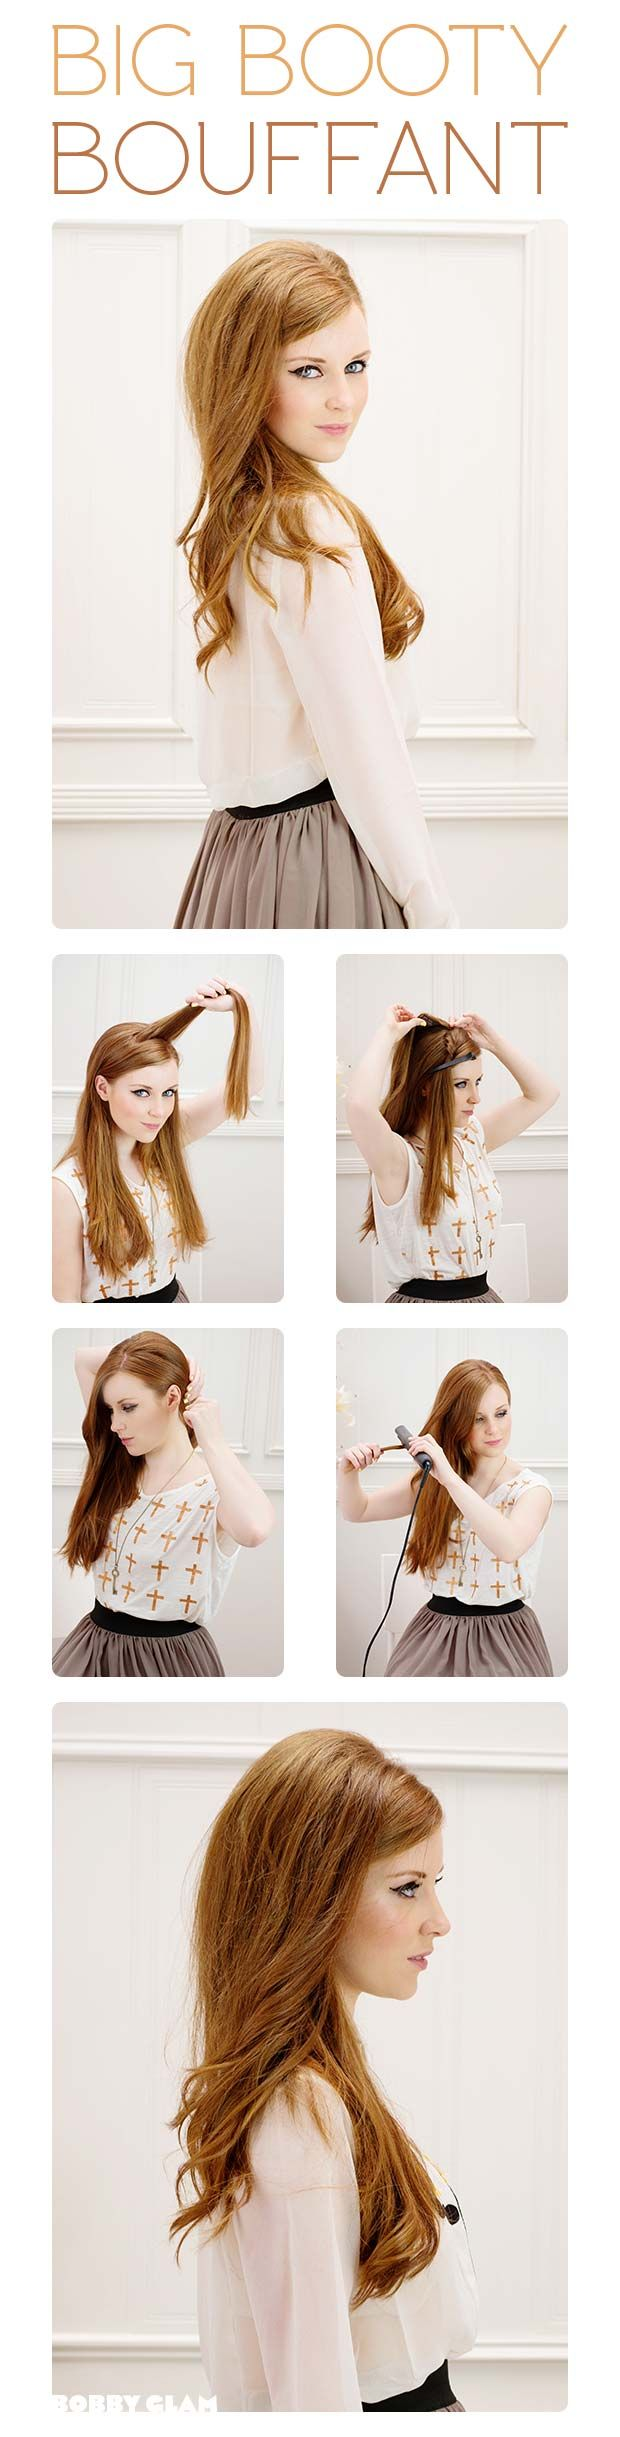 Bouffant Hair Tutorial.